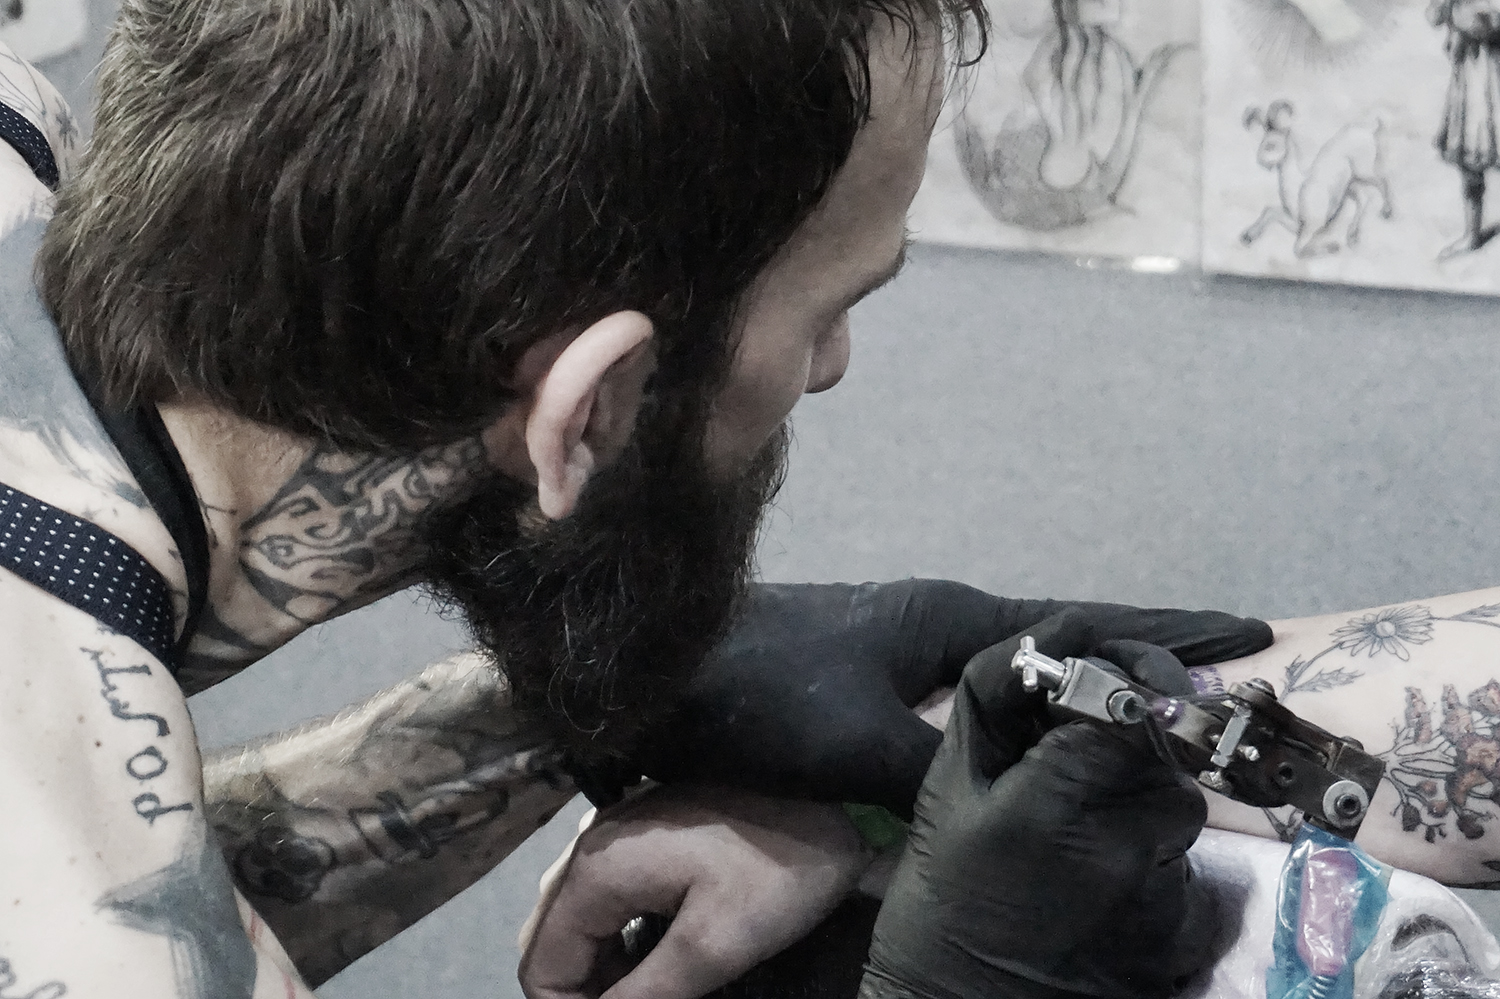 tattoo artist xoil from france, at london tattoo convention